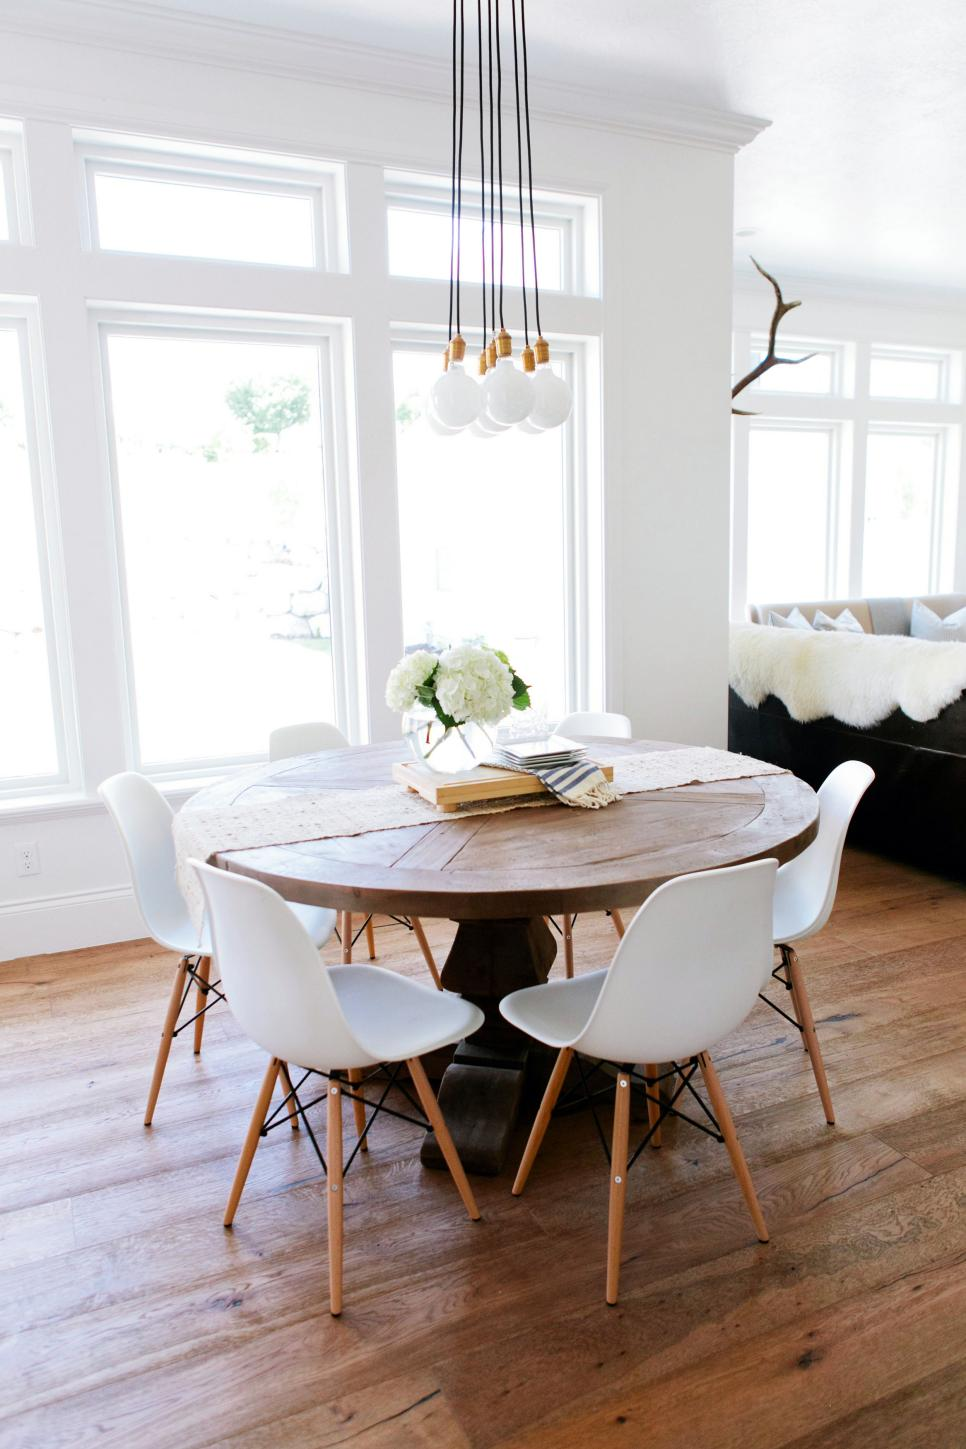 Rustic Round Table With Eames Chairs